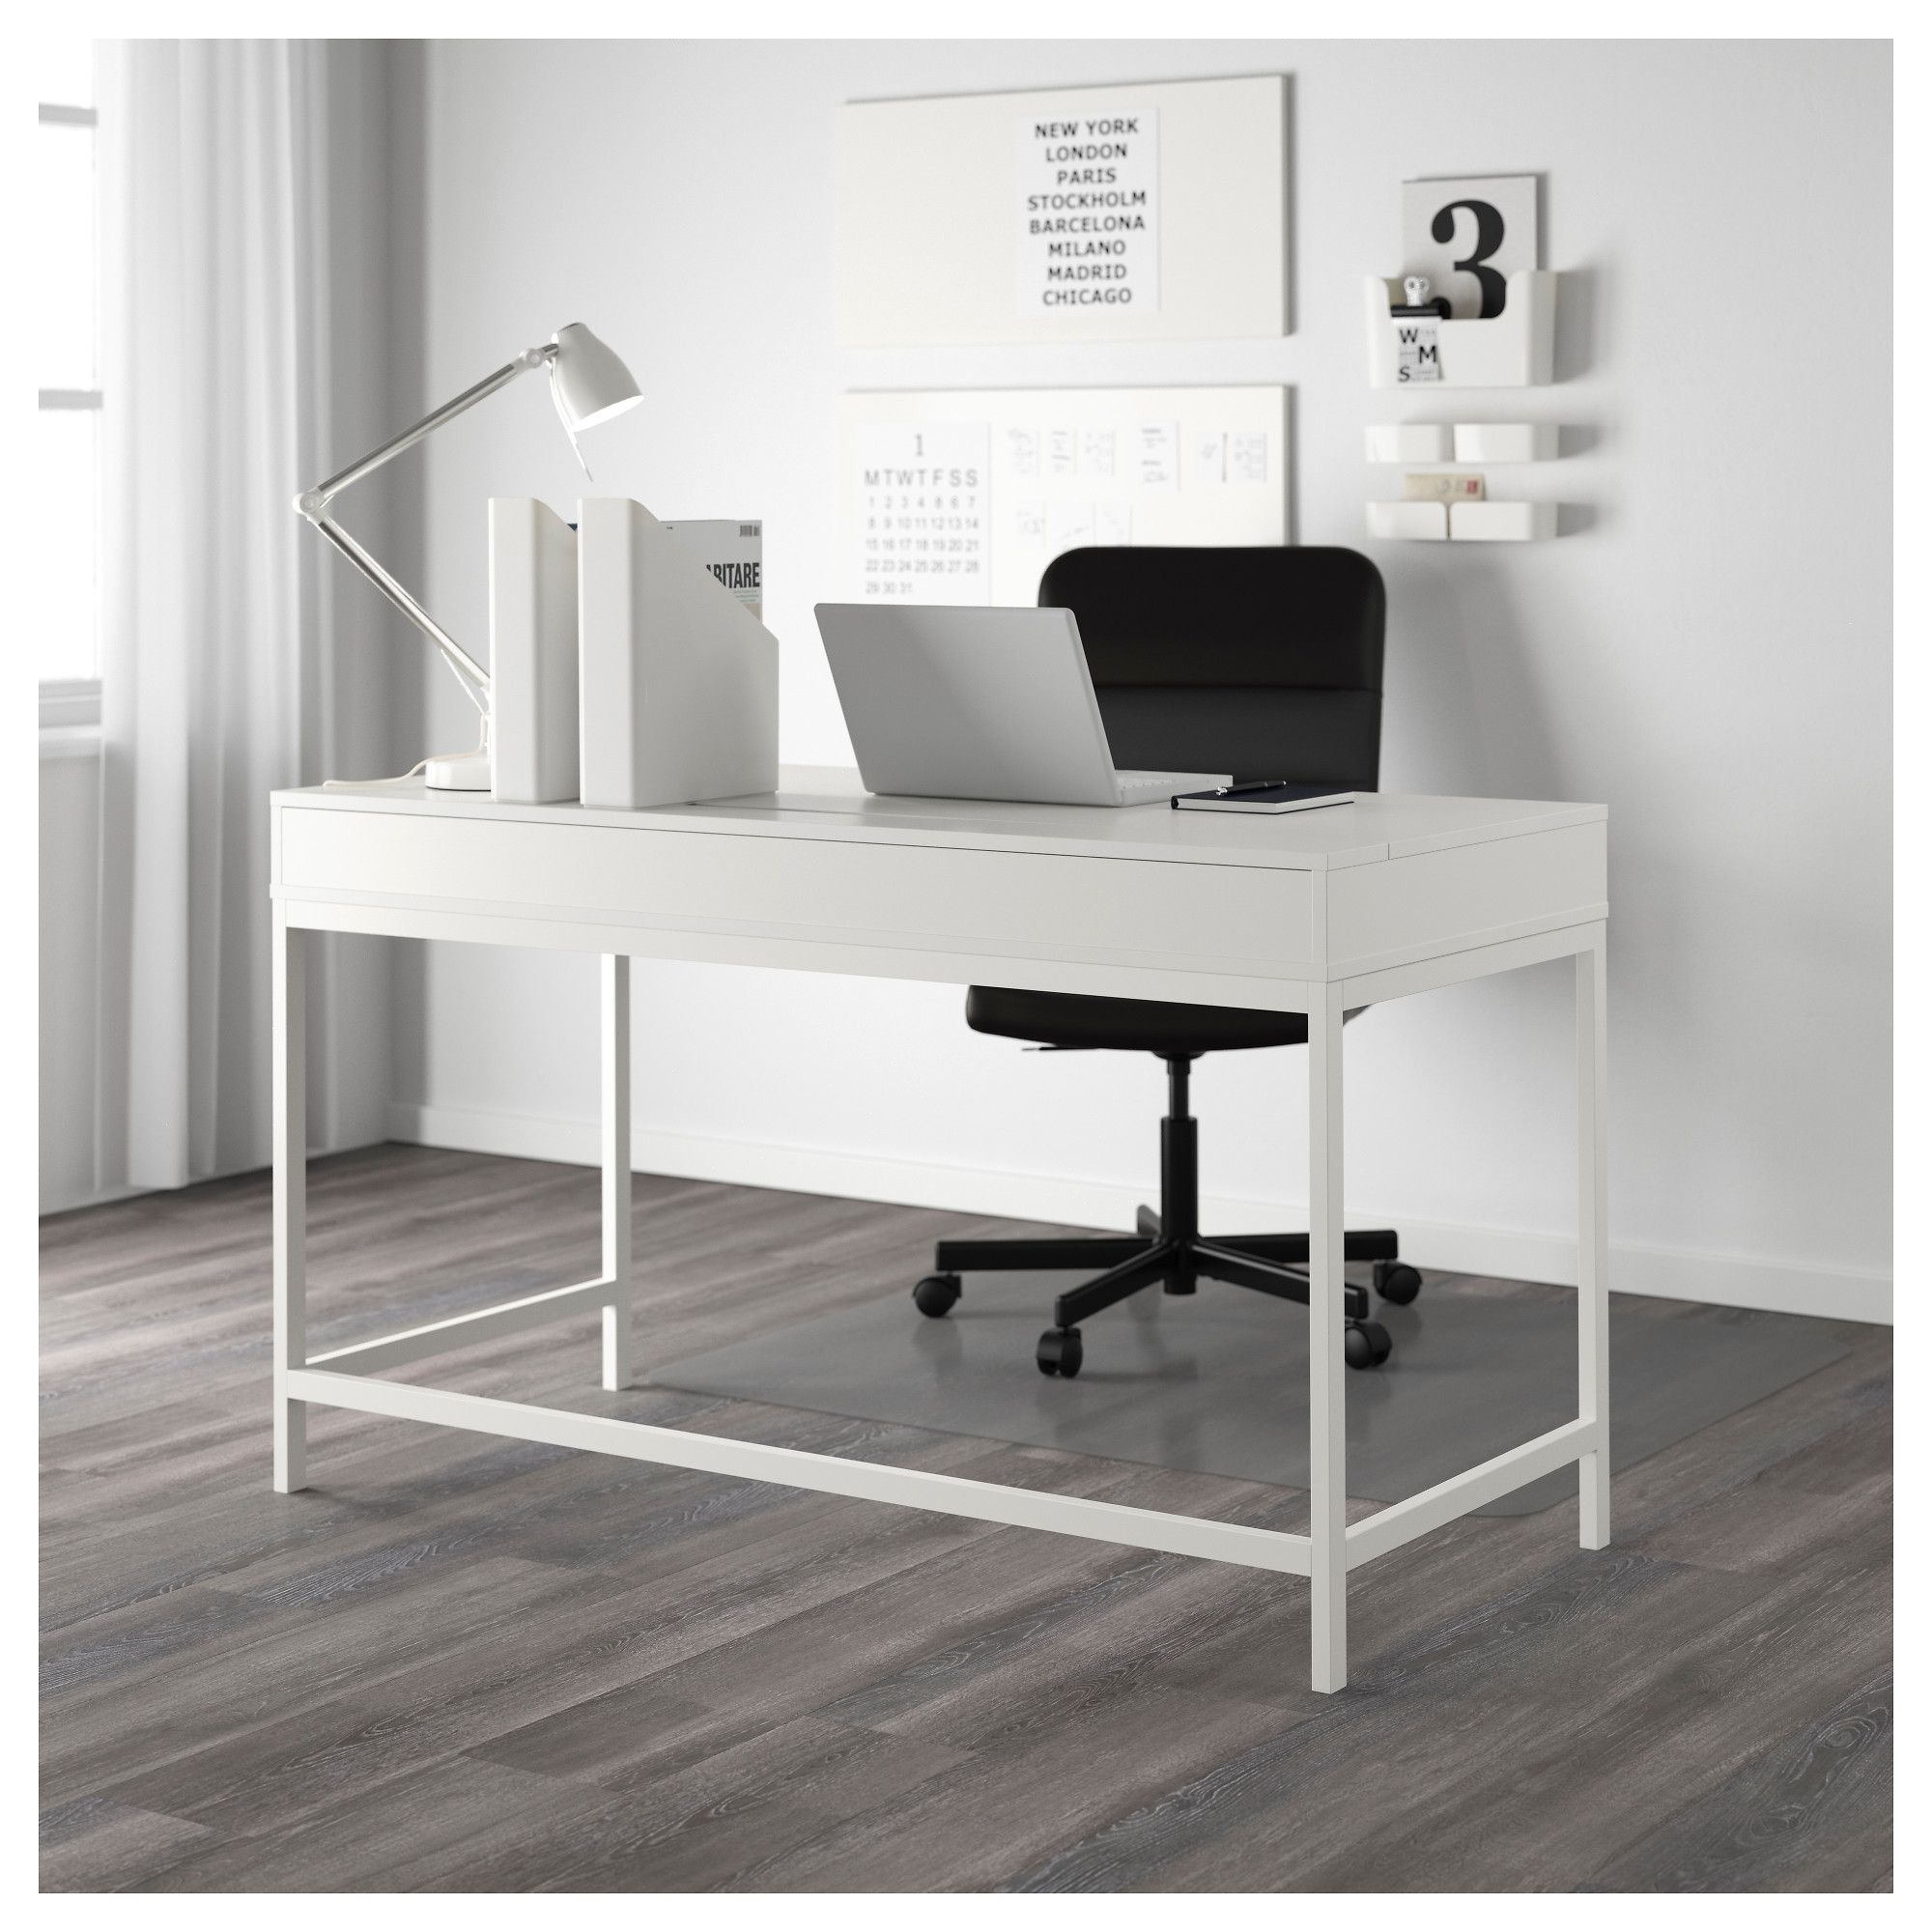 Ikea Alex Desk White